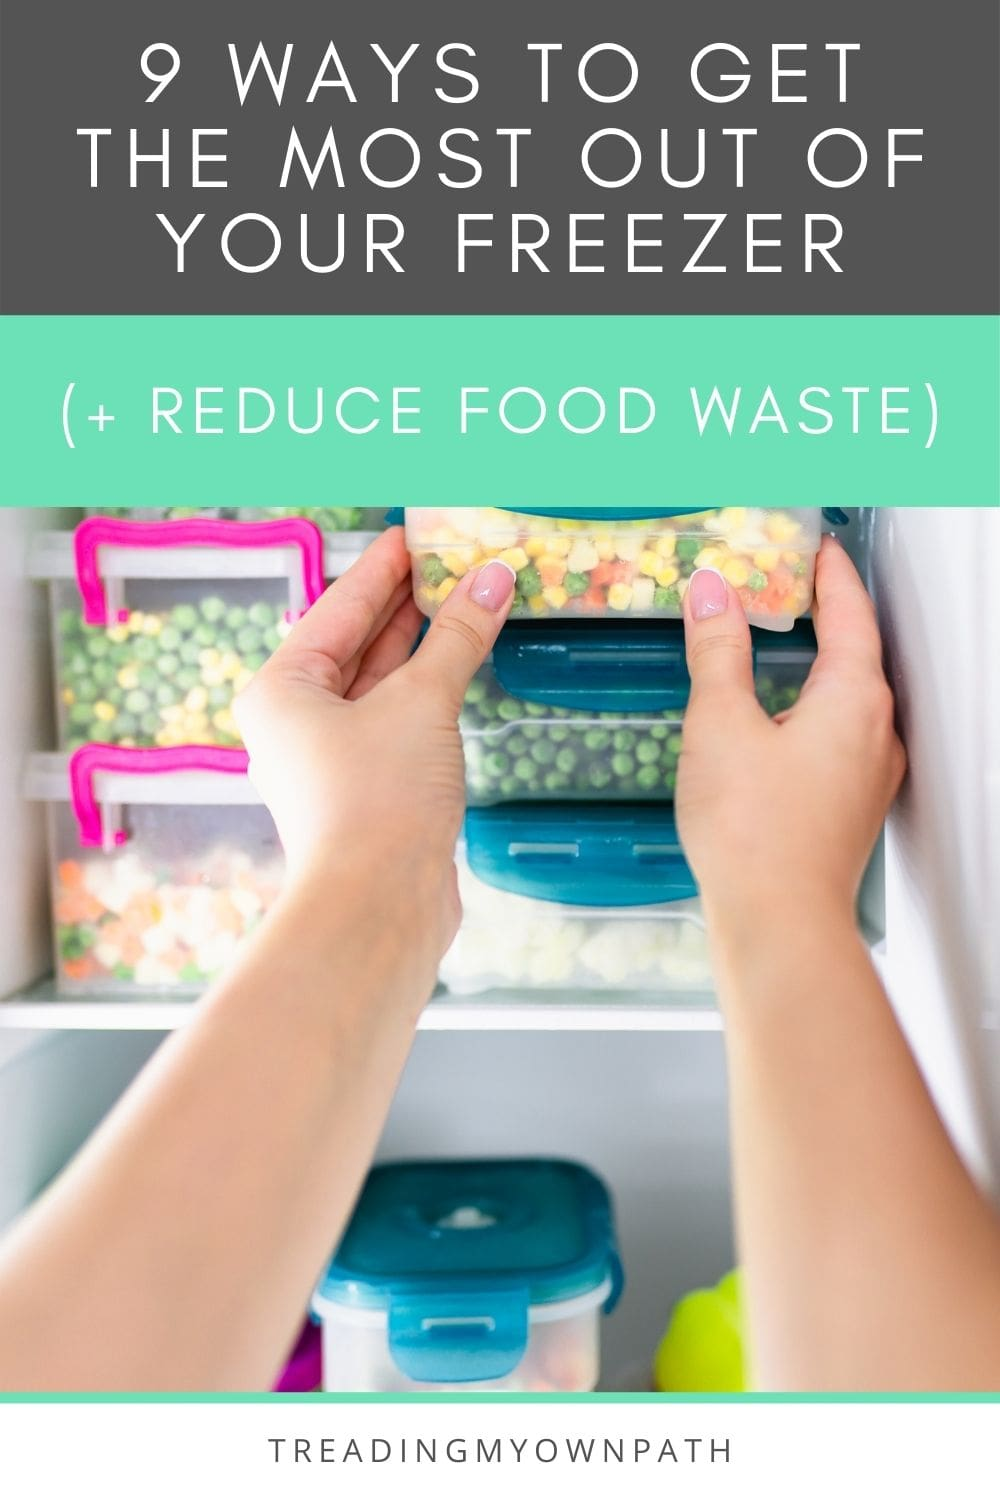 9 ways to get the most out of your freezer (+ reduce food waste)